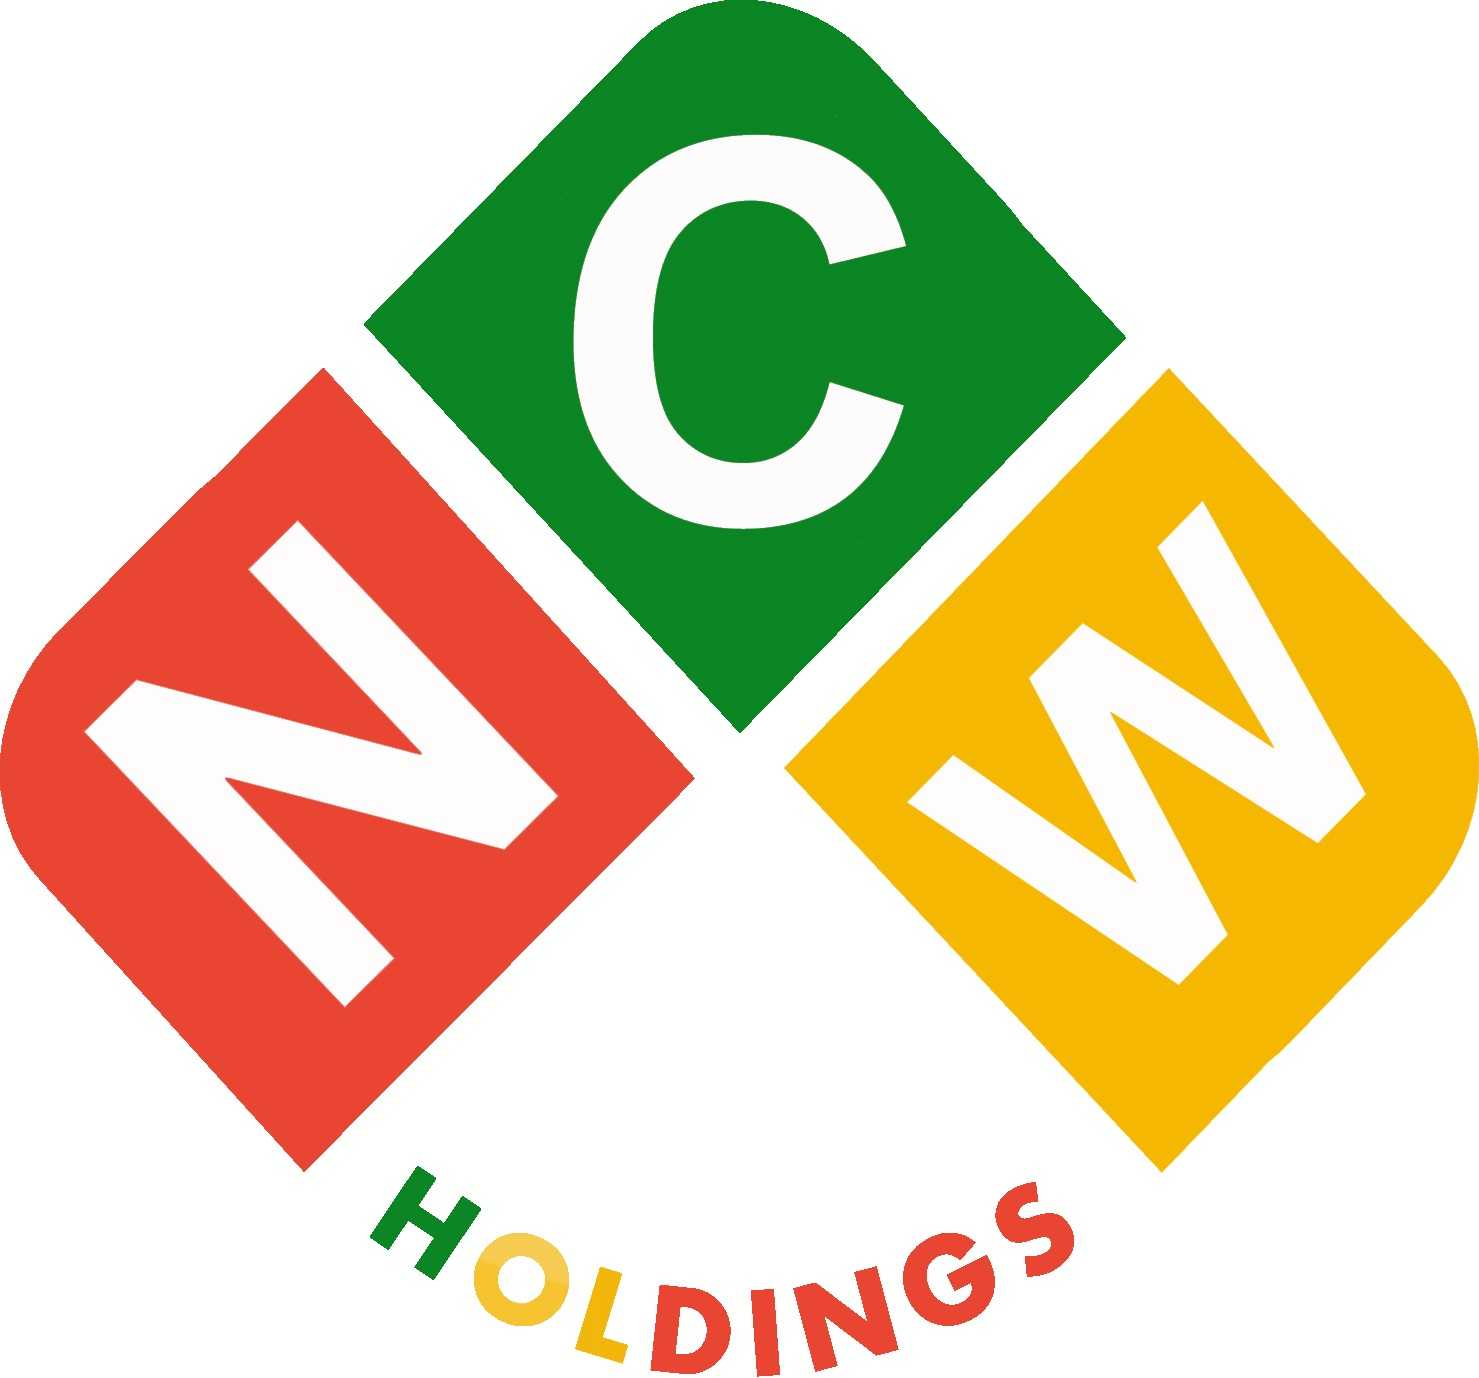 NCW Holdings